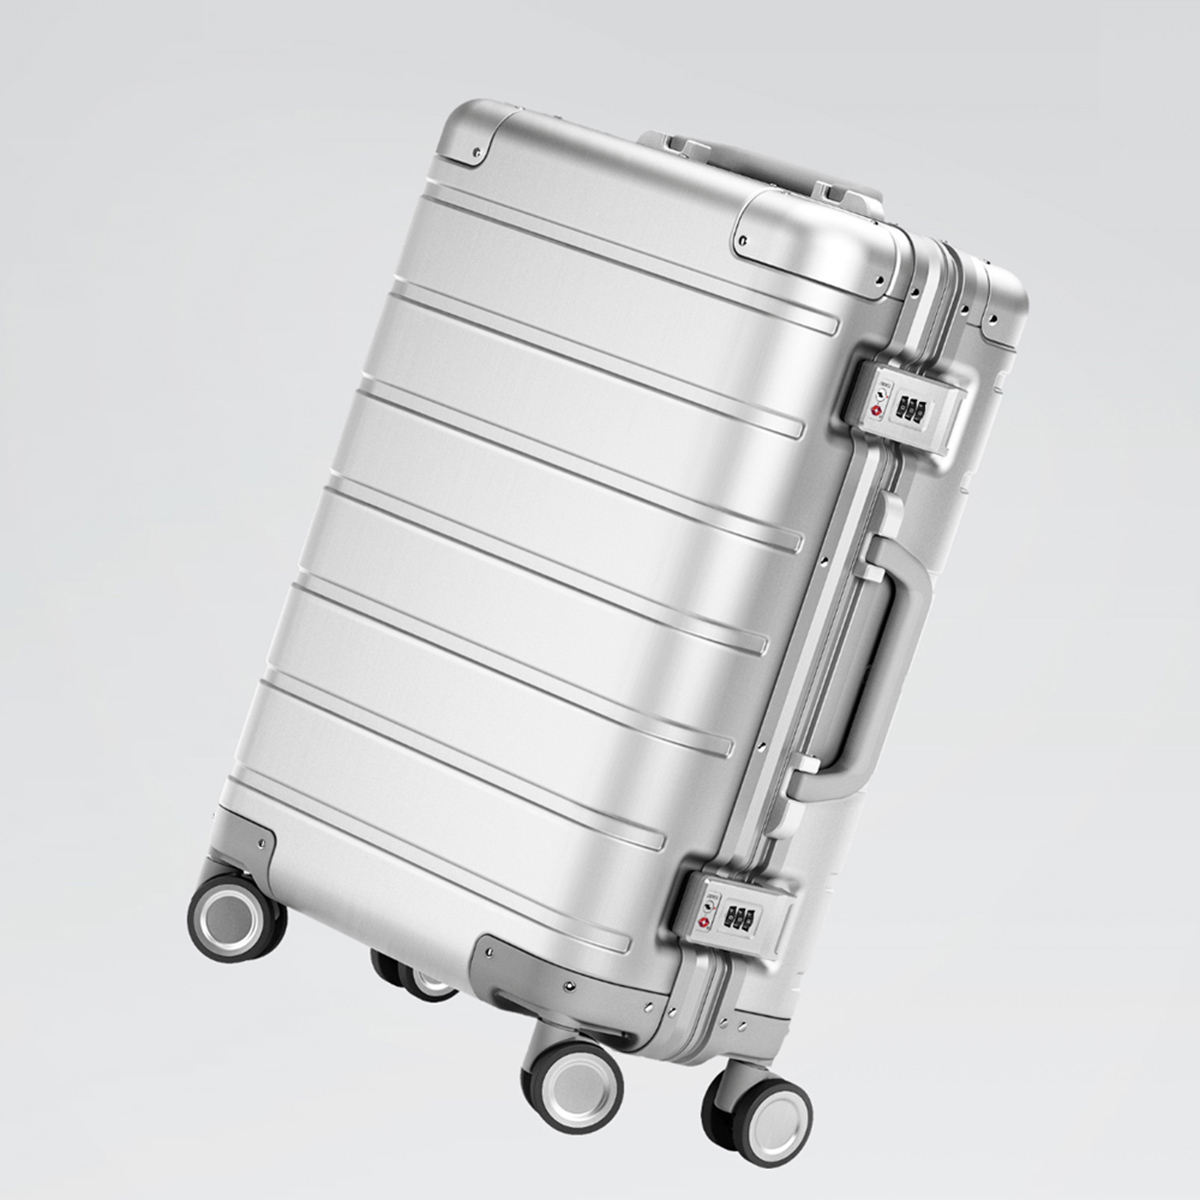 Xiaomi 90FUN Metal Travel Suitcase Luggage Carry on Spinner All-direction Wheel Suitcase 20 Inch for Men Women